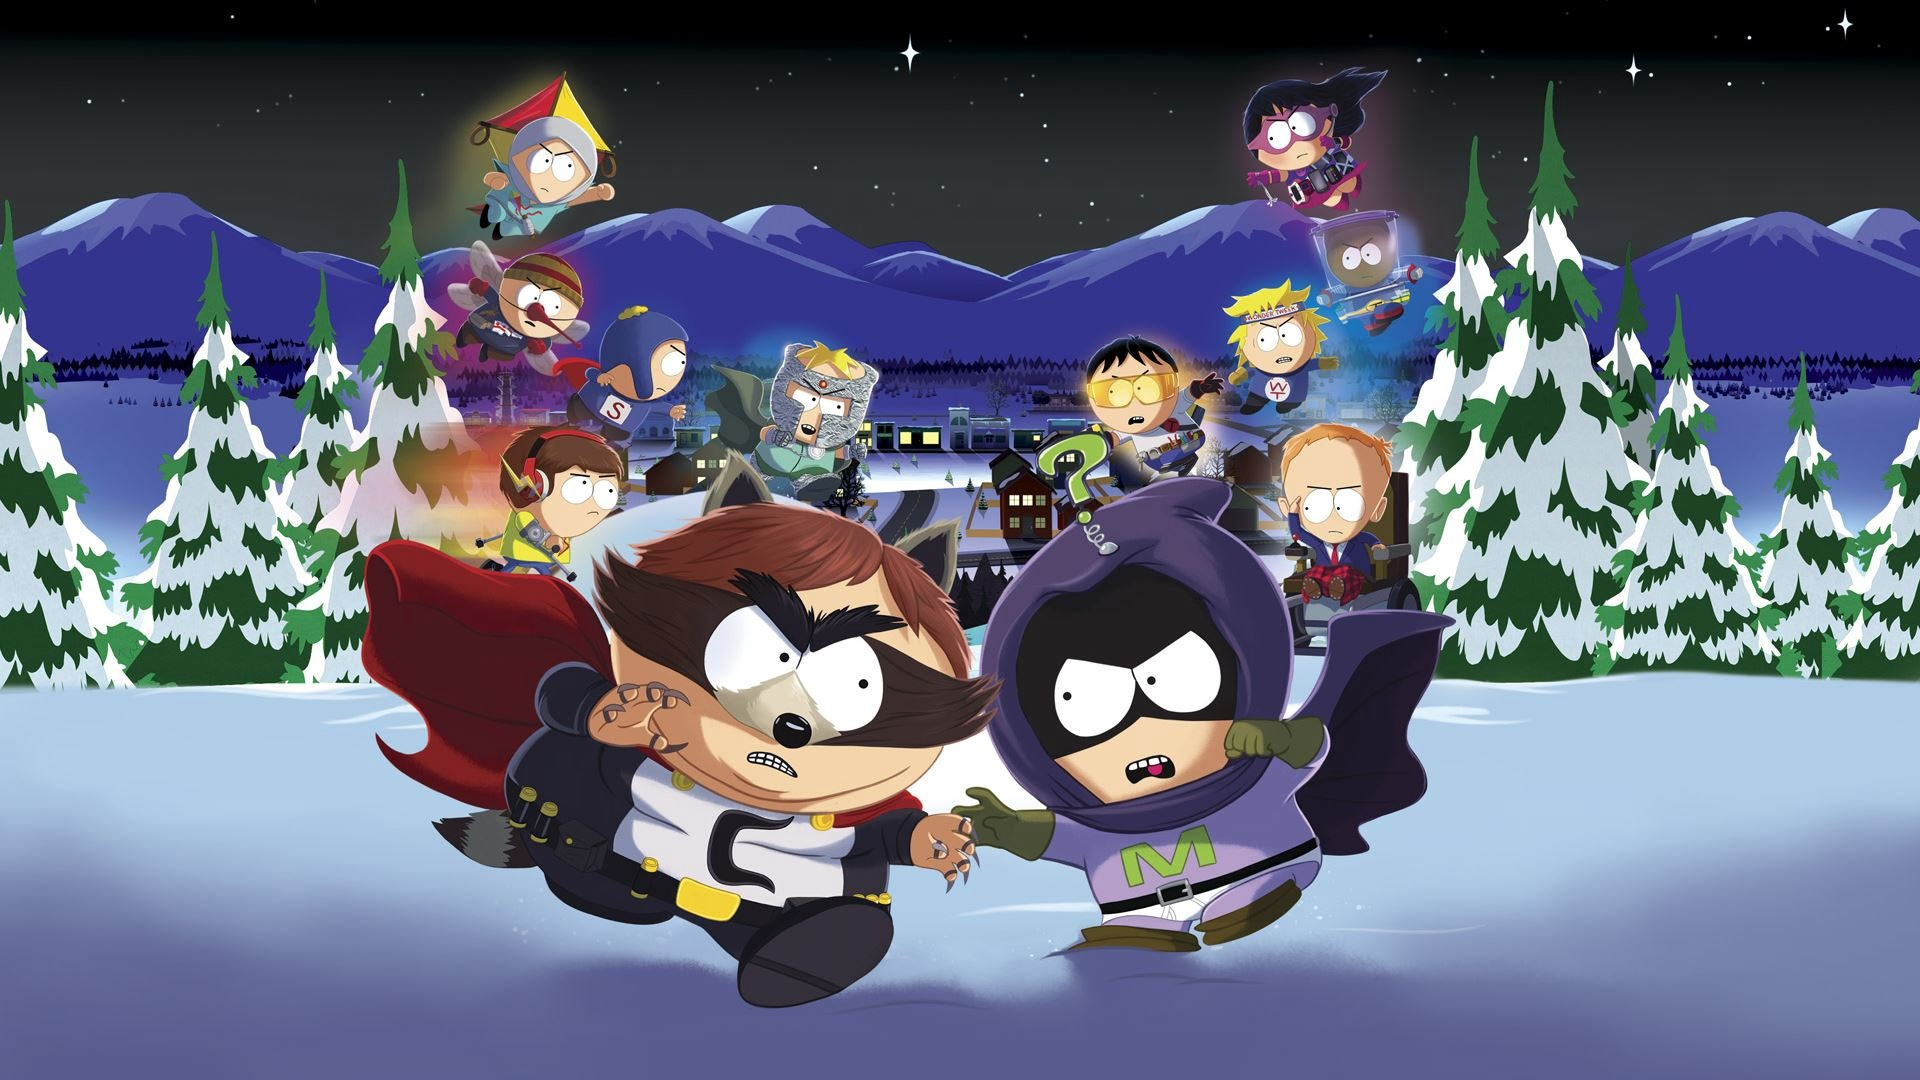 Download wallpaper 1920x1080 south park the fractured but whole 1920x1080